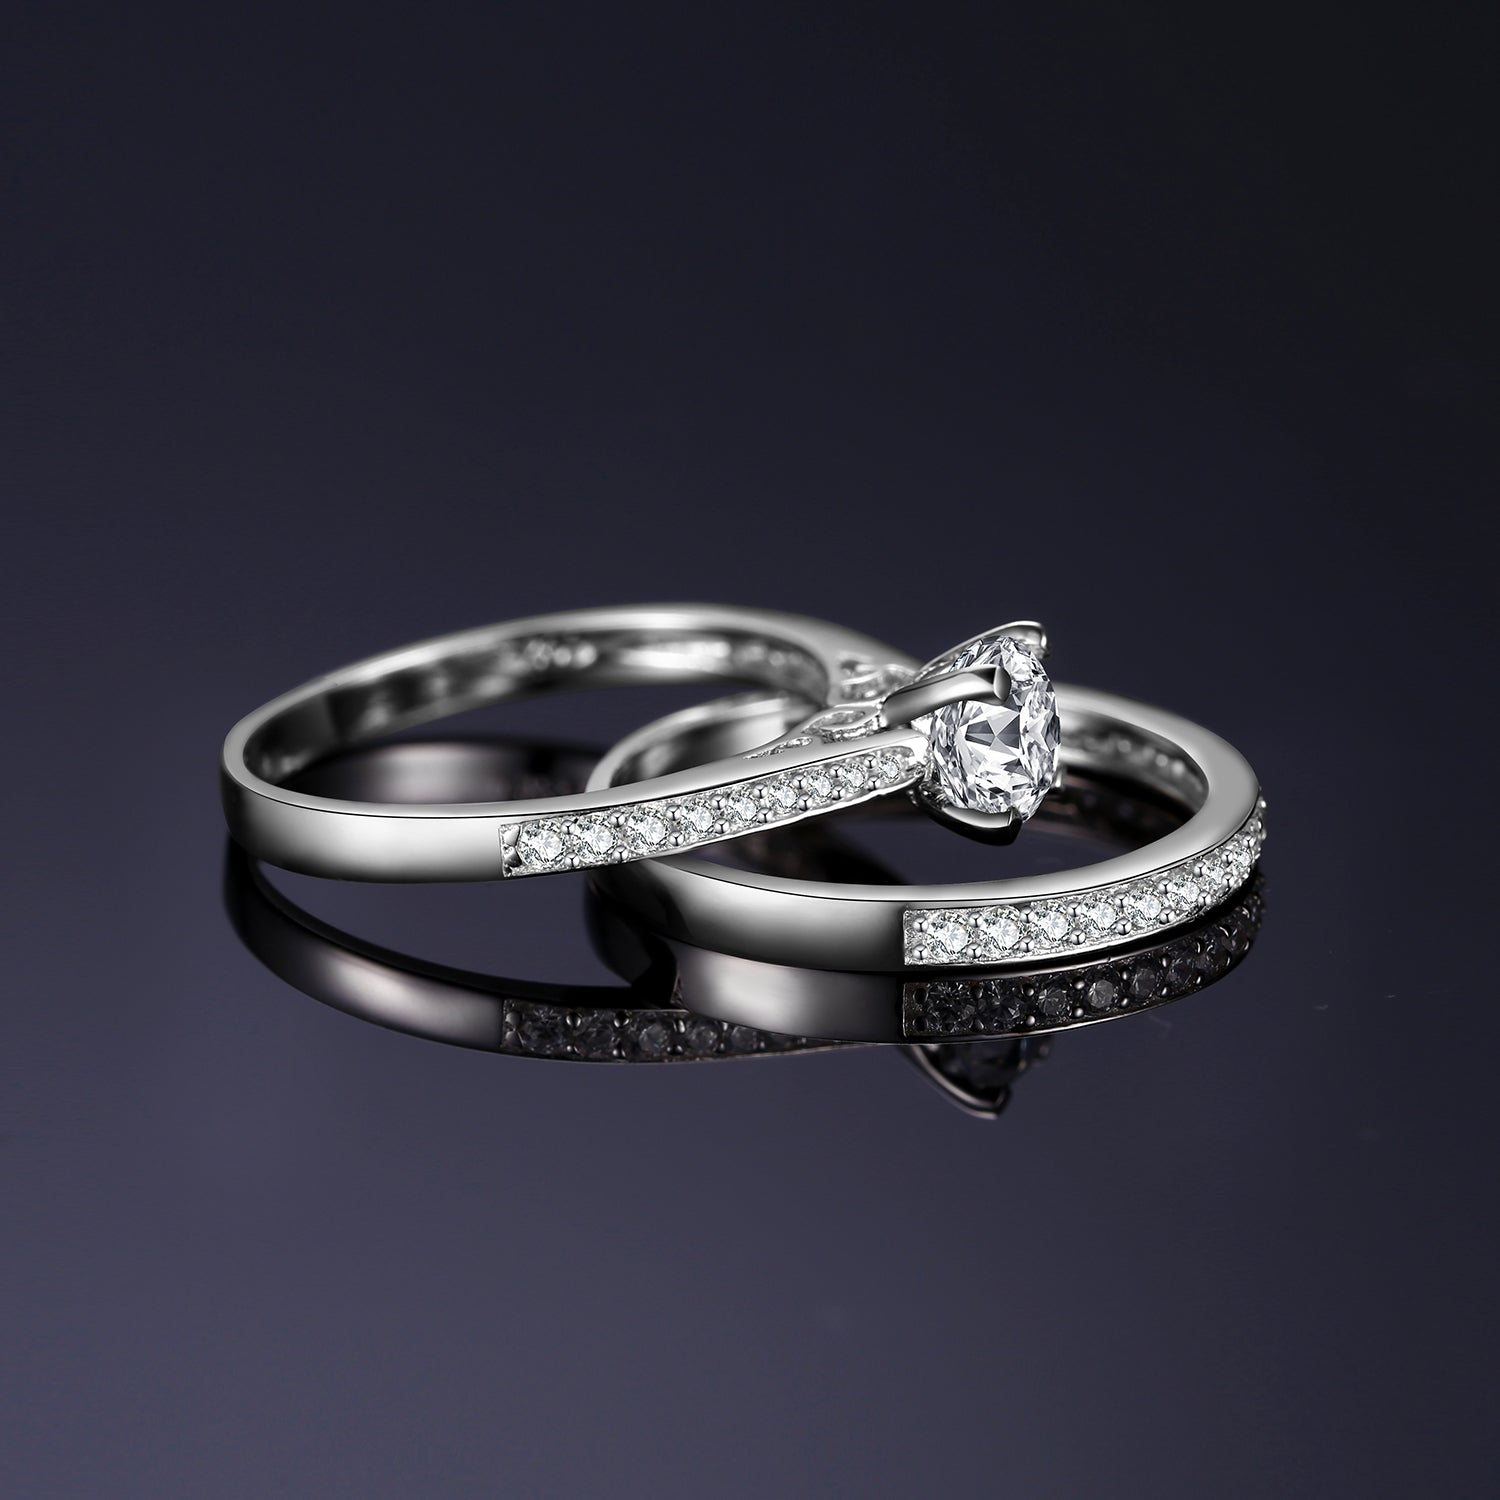 Engagement Ring Set for Women Anniversary Wedding Rings Bridal Sets - BEAUVAN